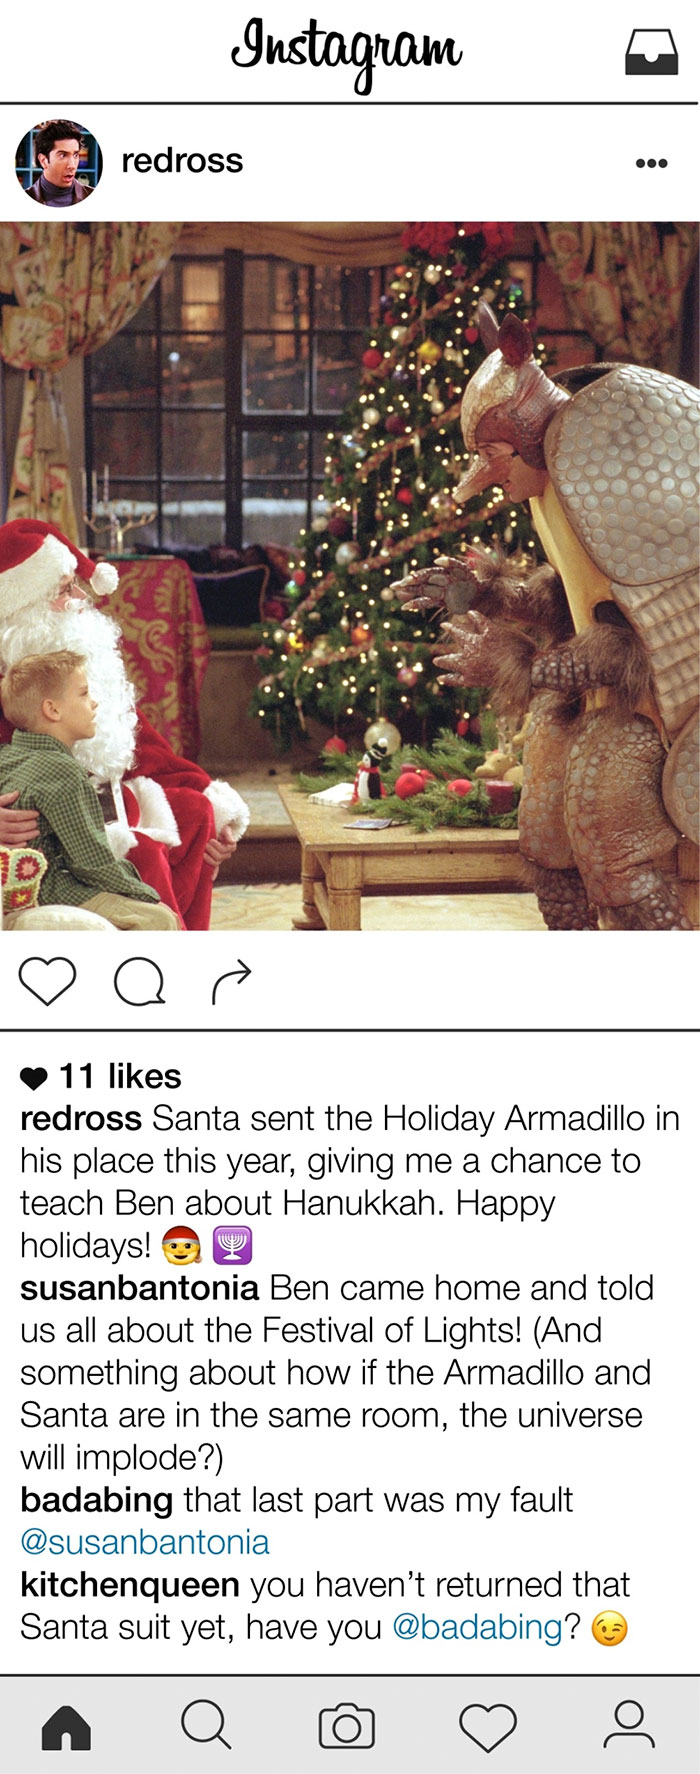 If Ross Geller Had Instagram